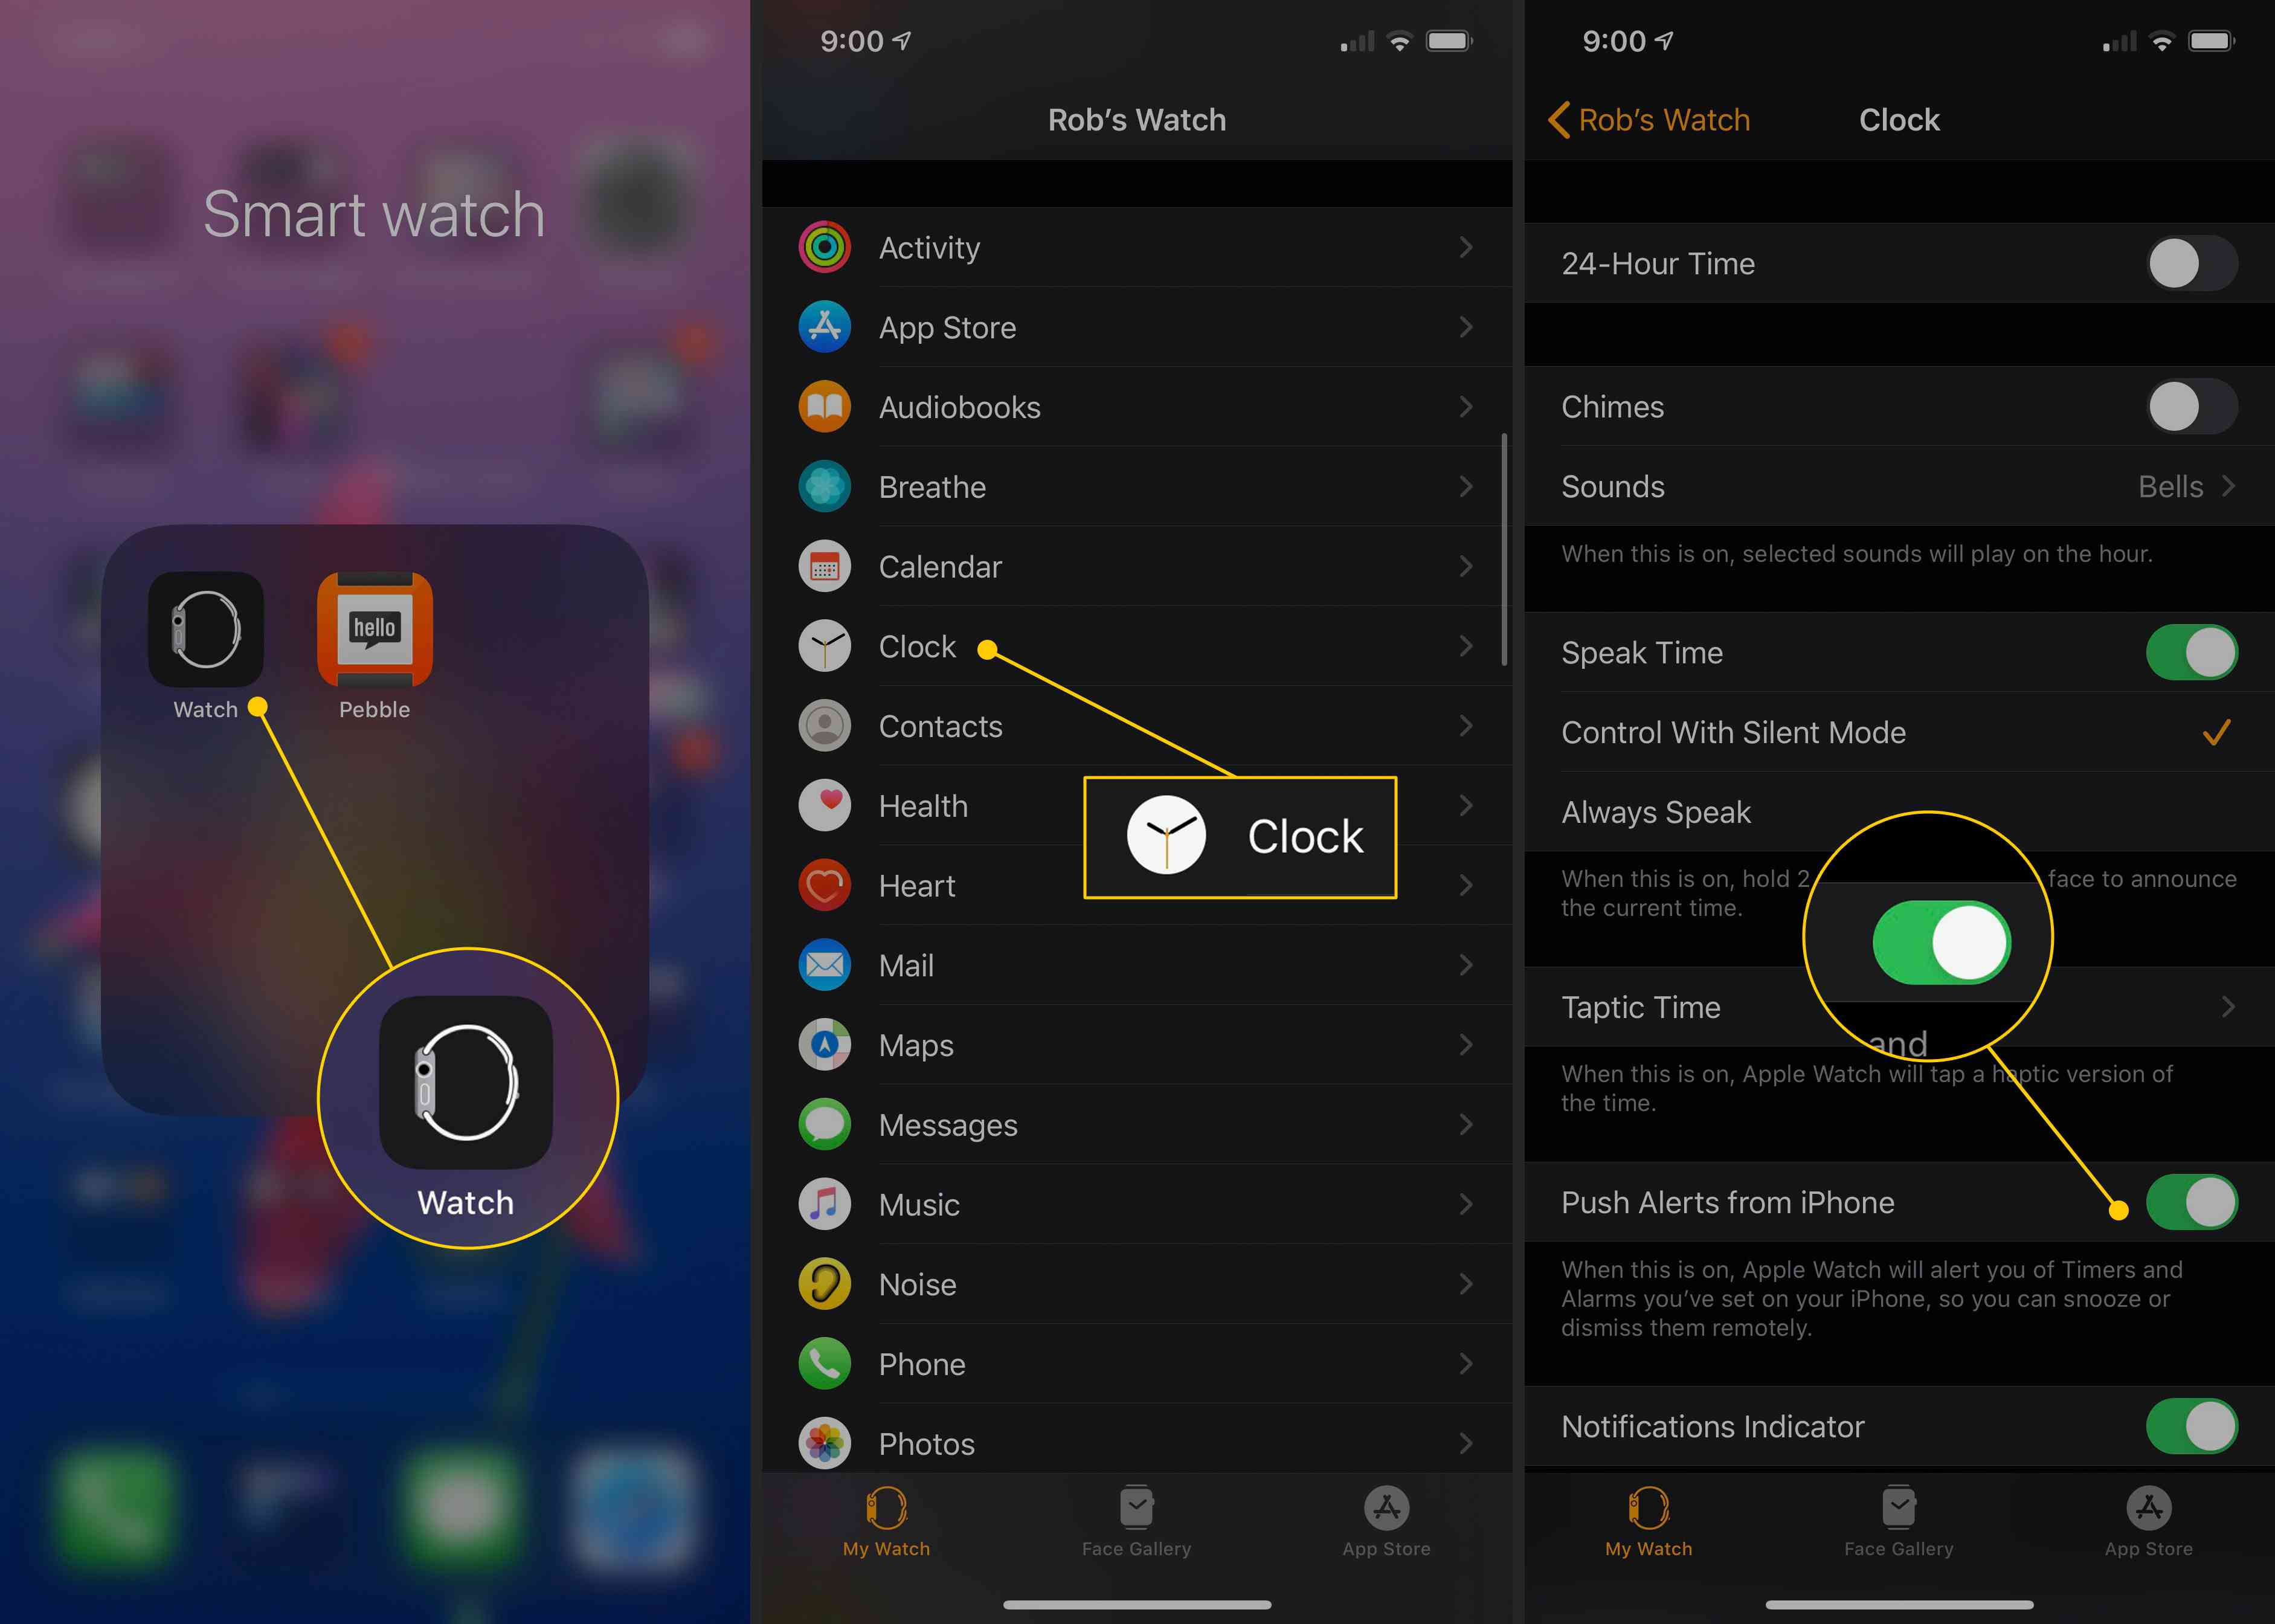 Watch icon, Clock button, Push Alerts from iPhone toggle ON on iPhone